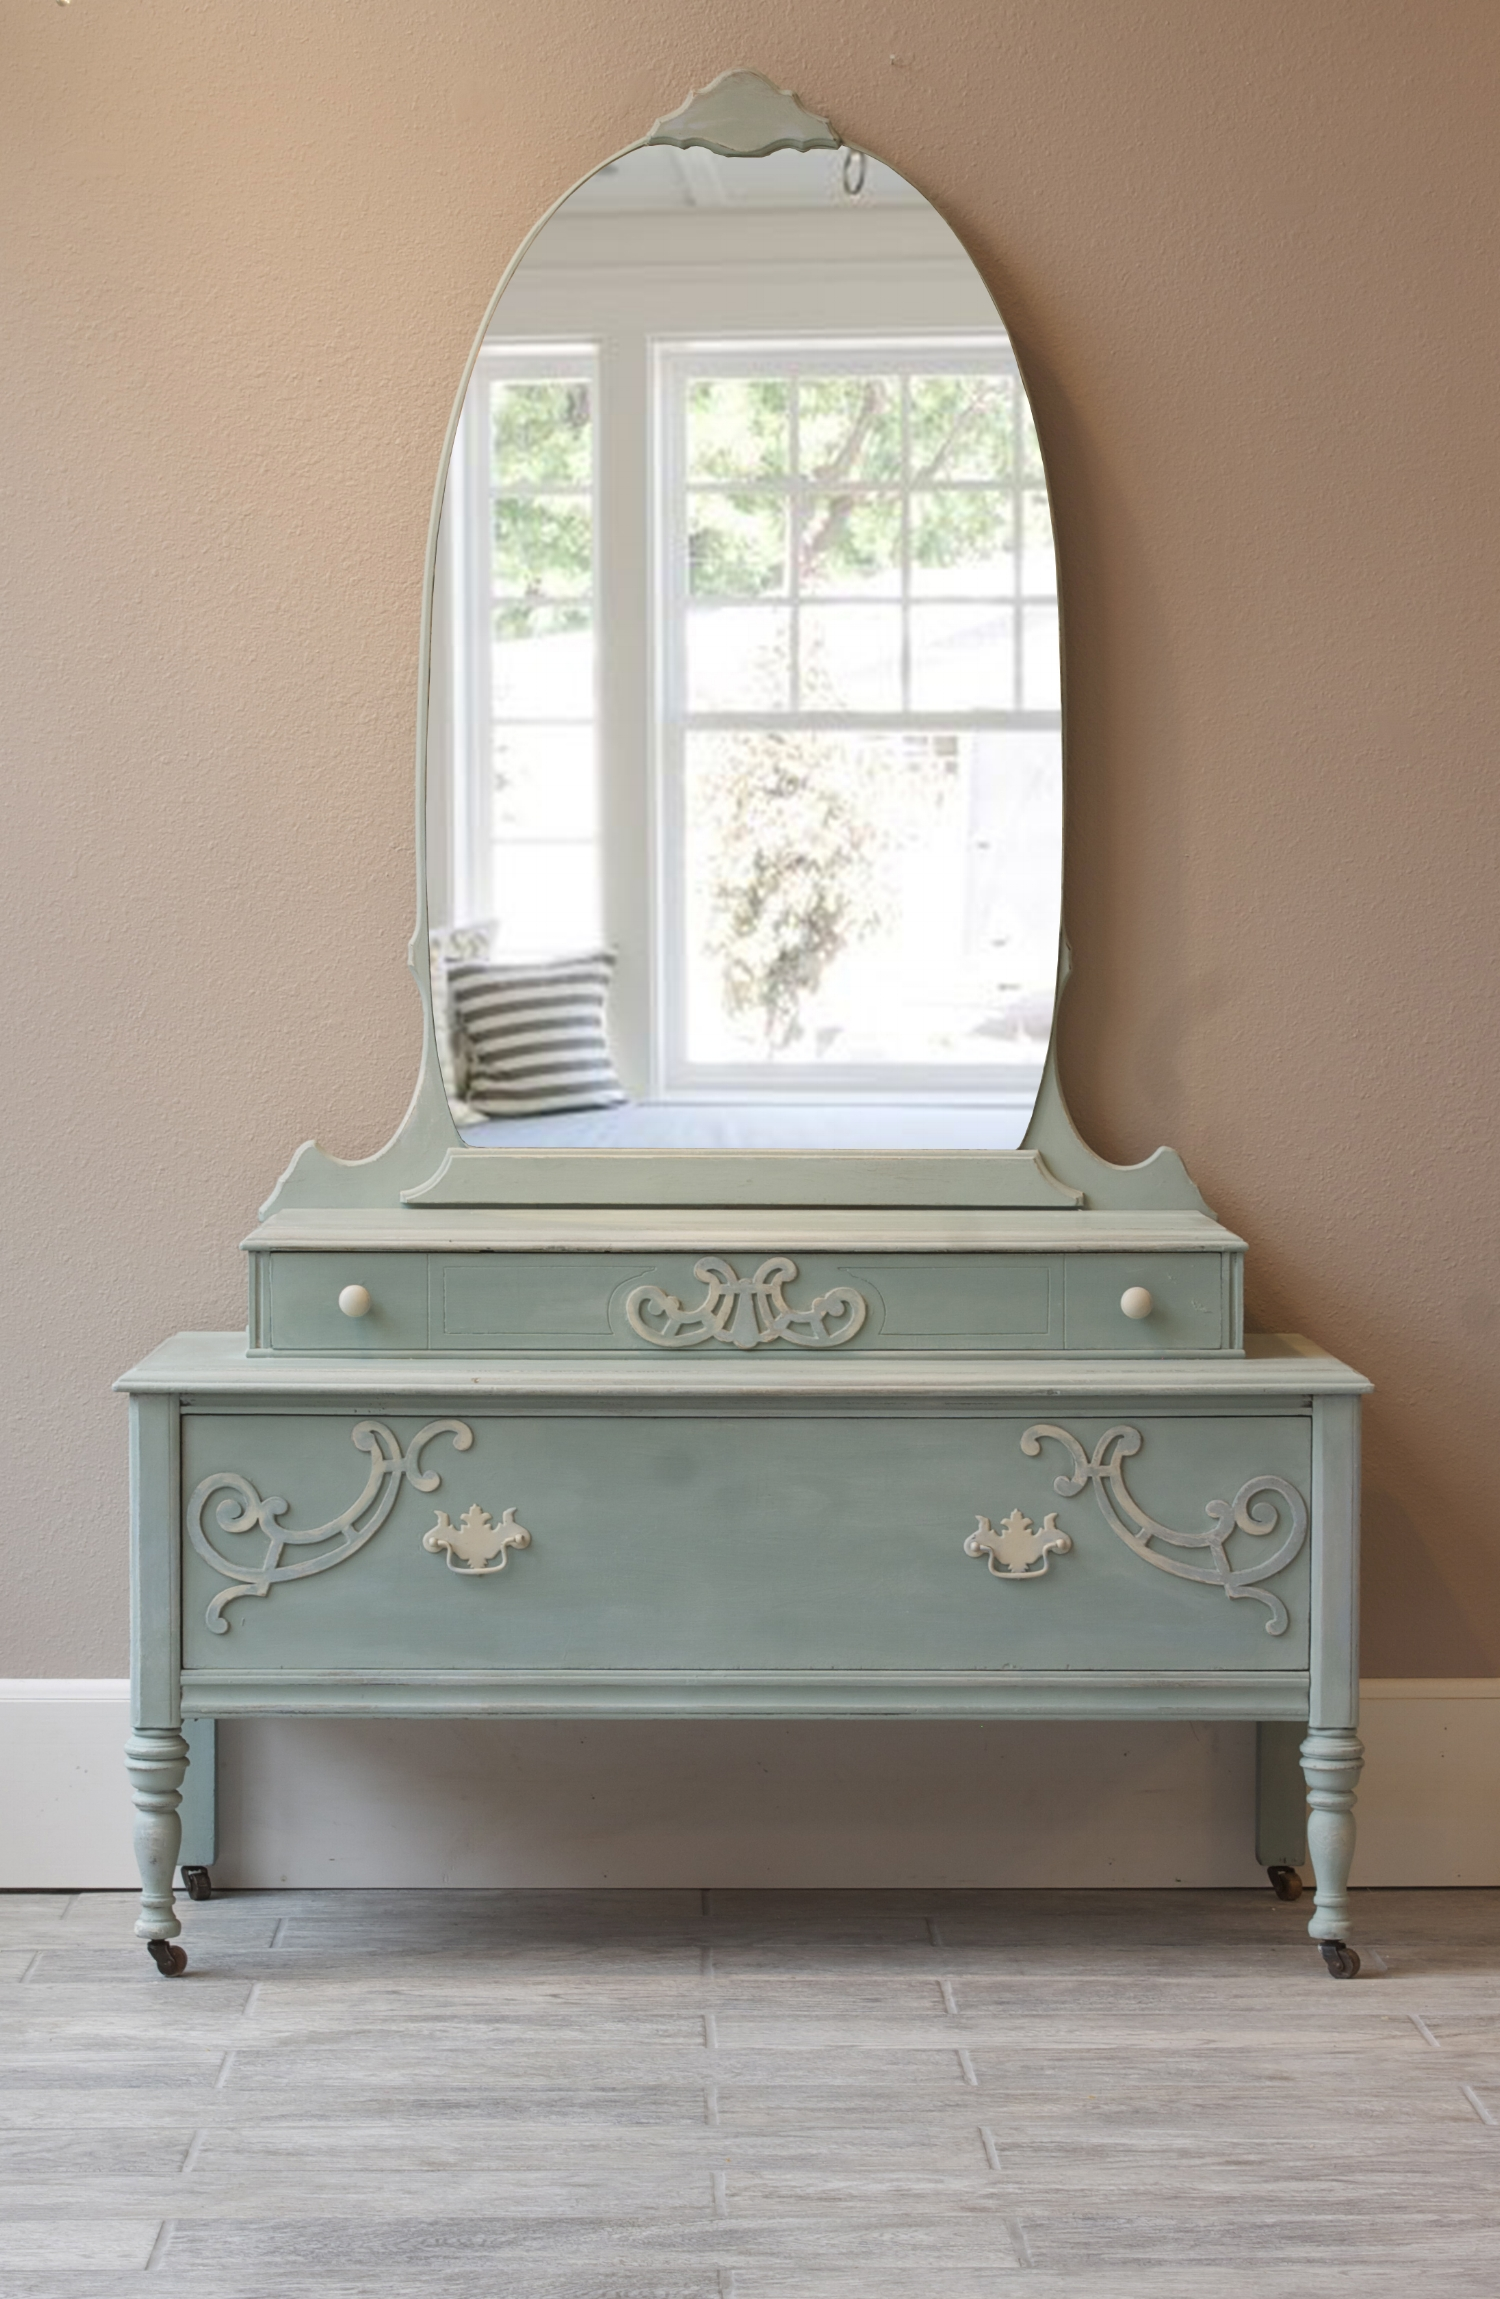 "Gorgeous Victorian vanity finished using 4-color layered process. Colors used: Annie Sloan Chalk Paint® in French Linen, Old Ochre, Duck Egg, and Louis Blue. Hardware was finished using Old Ochre and Louis Blue. Slightly distressed finish. Sealed with clear wax.  Dimensions: Length - 44"", Depth - 18"", Height - 69""/26"" without mirror.   $250.00 SOLD"